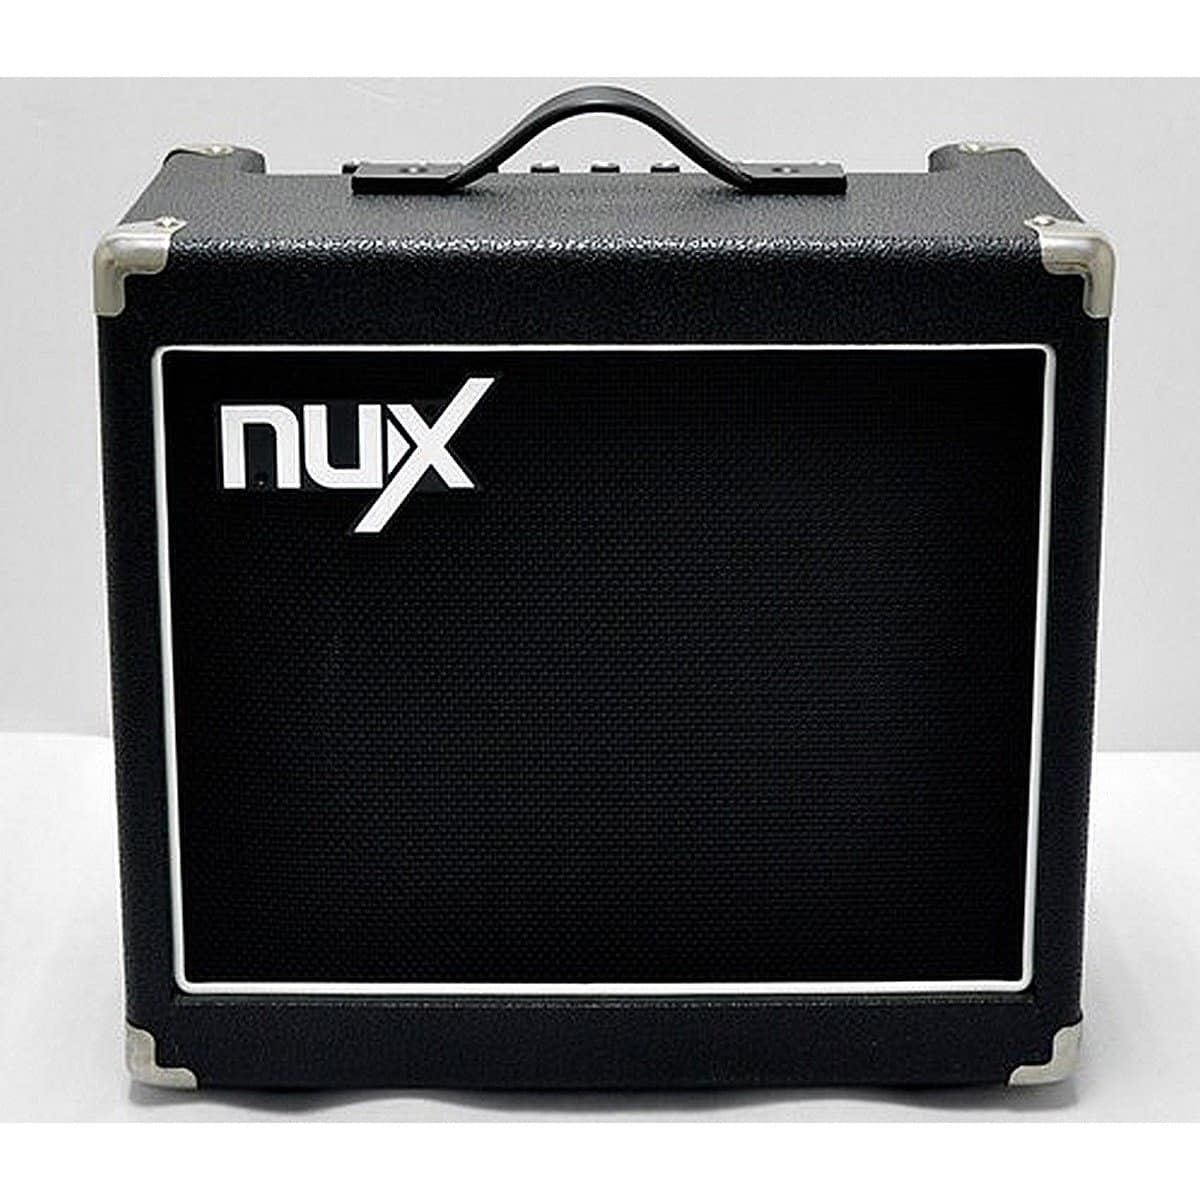 nux mighty 15 electric guitar combo amplifier with built in reverb. Black Bedroom Furniture Sets. Home Design Ideas